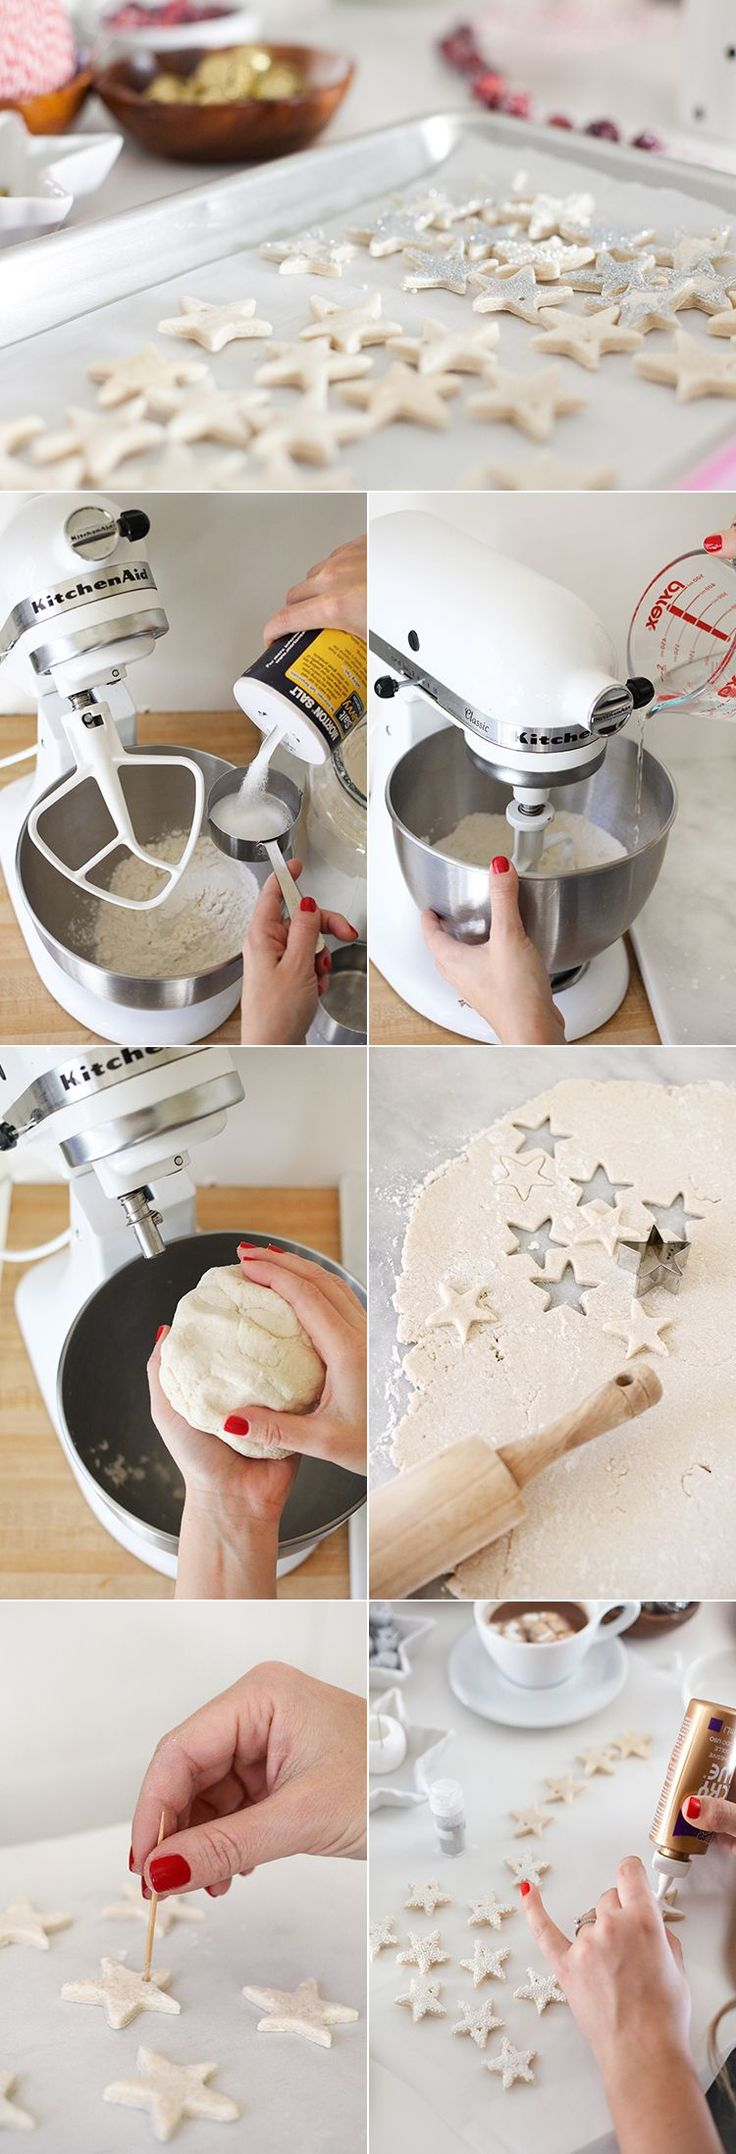 A recipe and instructions for salt dough ornament stars.